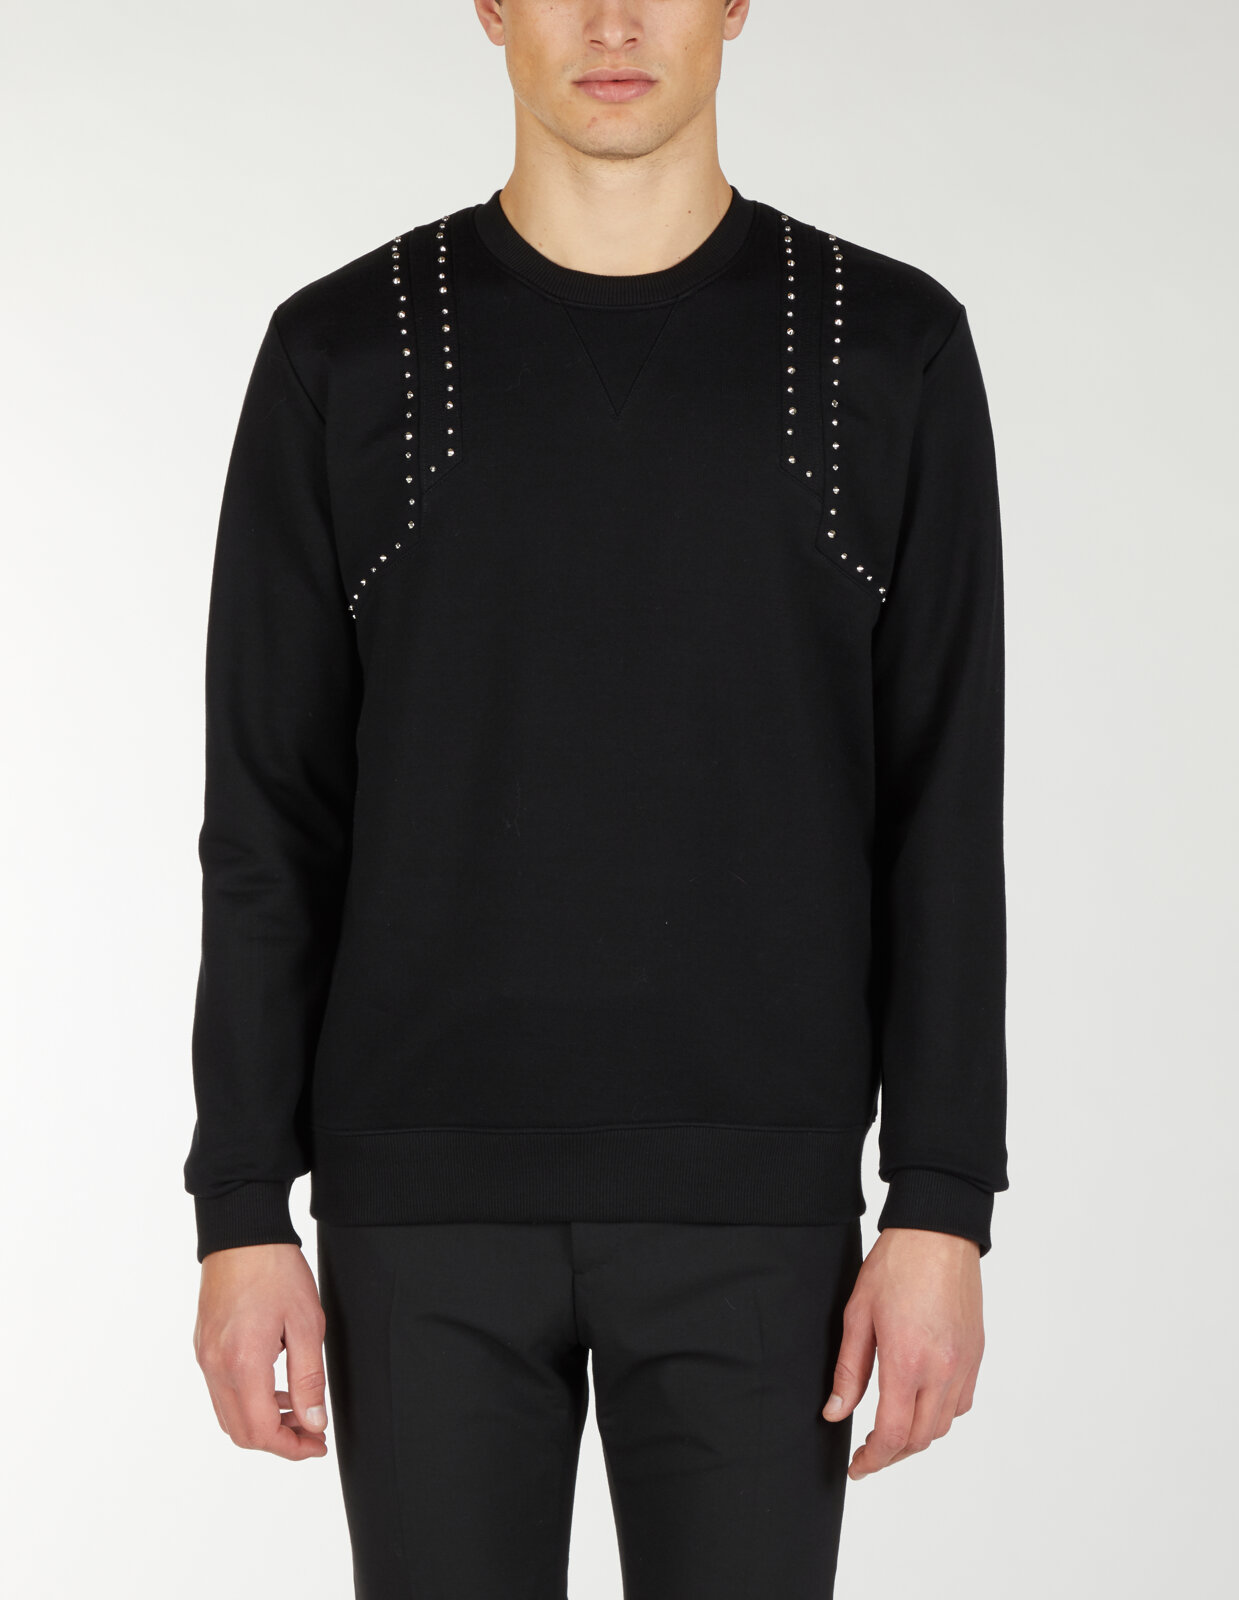 Sweatshirt With Studs - Les Hommes